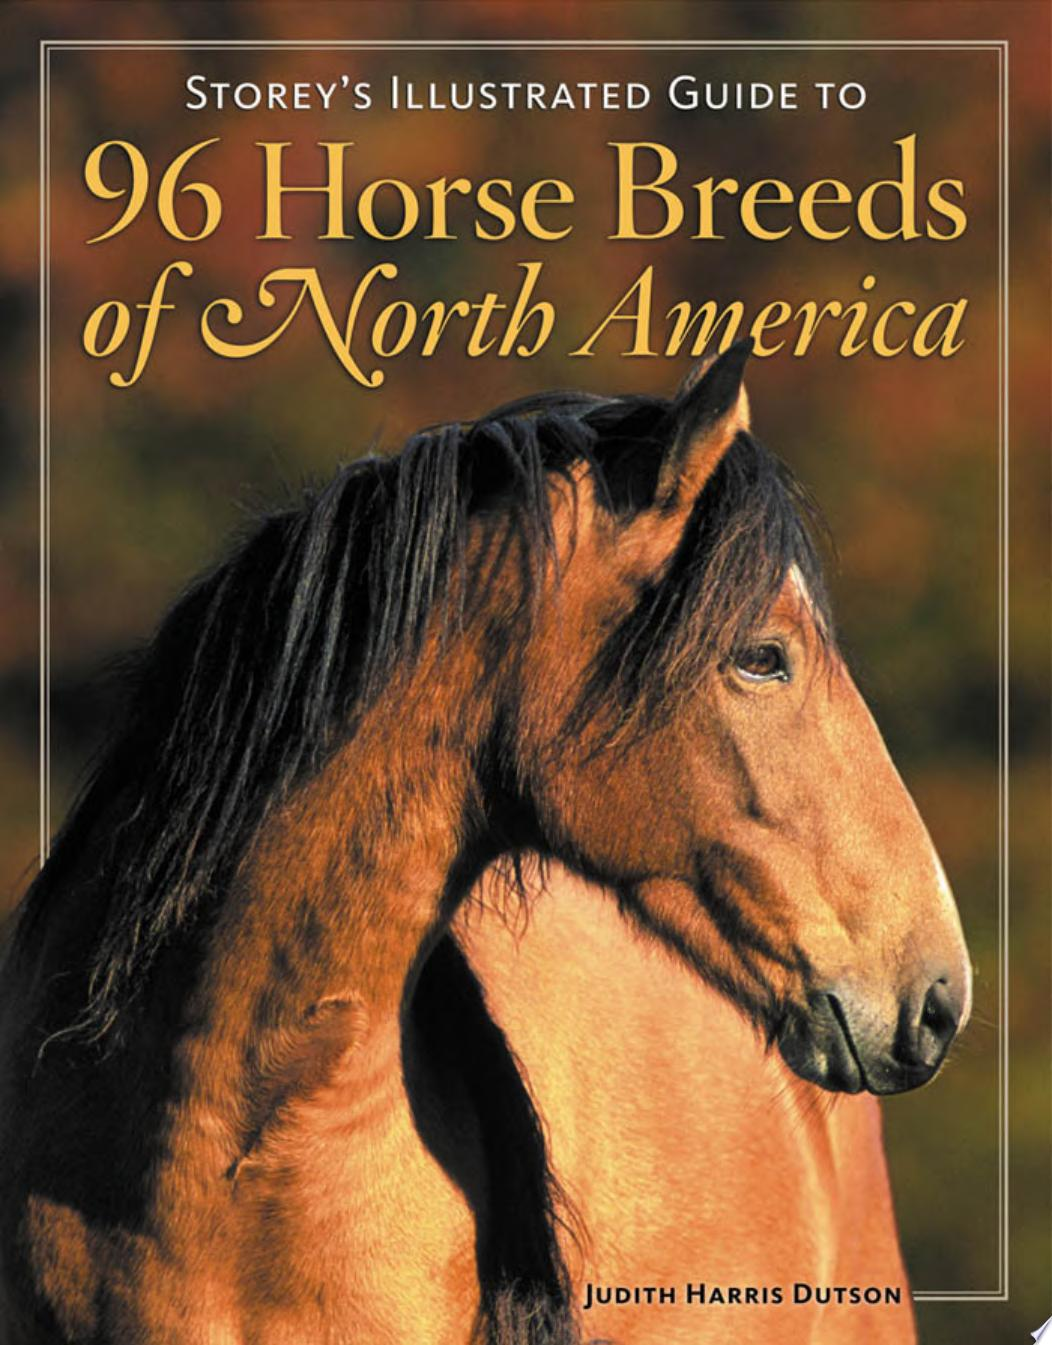 Storey s Illustrated Guide to 96 Horse Breeds of North America